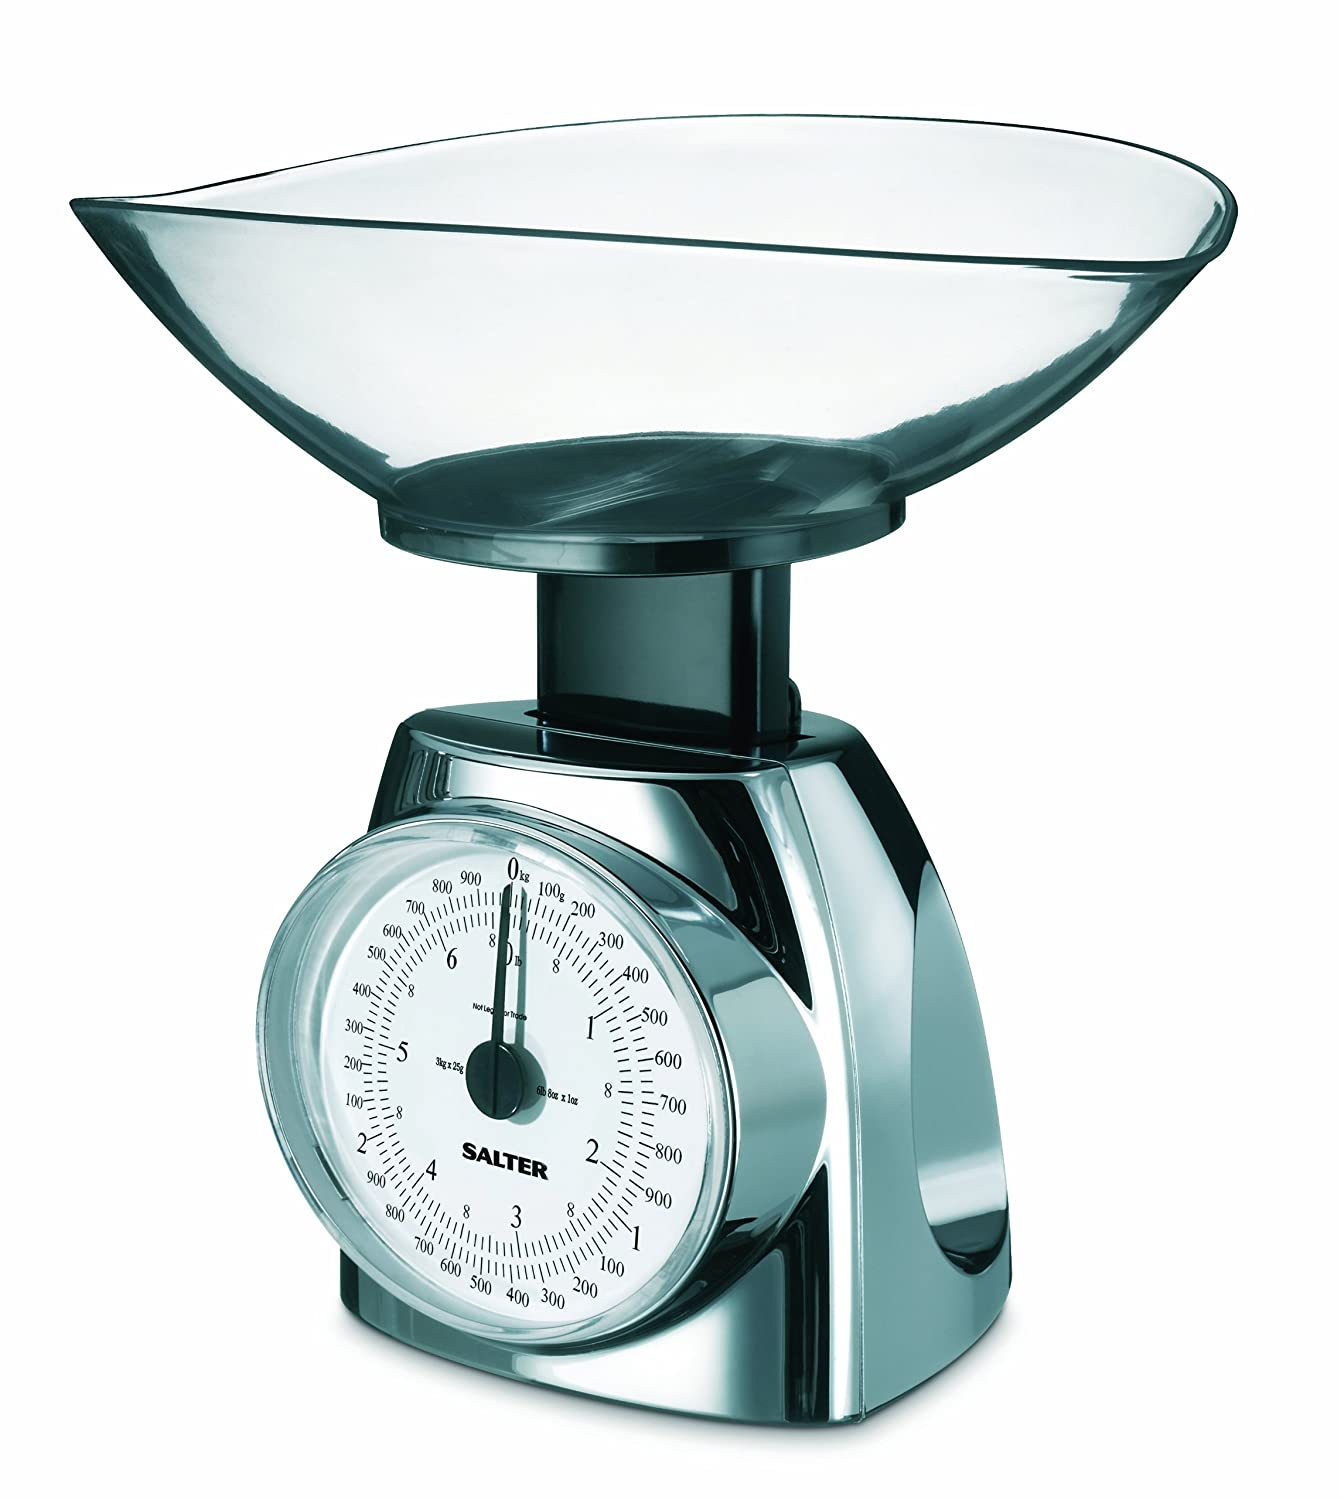 Amazon.com: Salter Chrome Look Mechanical Scale, Weighs To 6 1/2 Pound:  Mechanical Kitchen Scales: Kitchen U0026 Dining